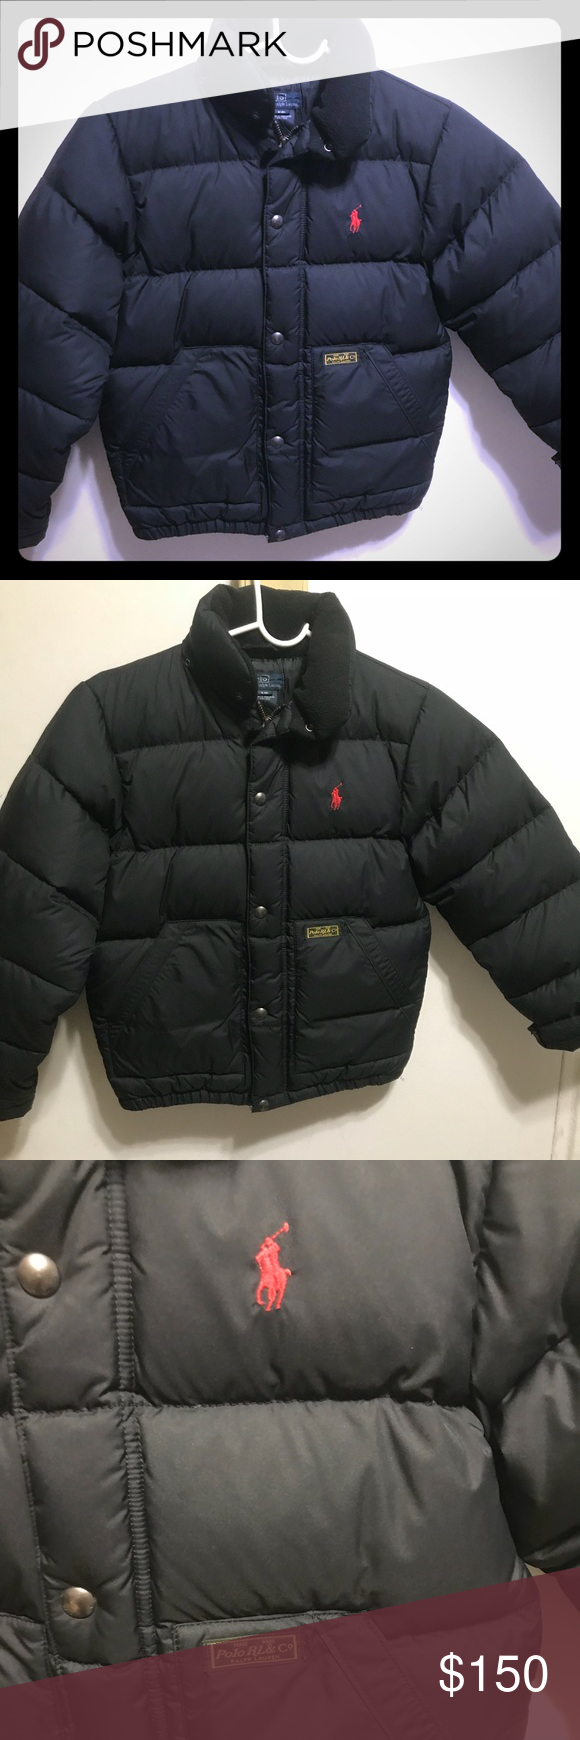 413fc82c7 Polo by Ralph Lauren Boys Puffer Jacket NWOT Sz 8 Brand new without tags  Polo By Ralph Lauren puffer jacket This super cute boys winter coat is  stylish ...